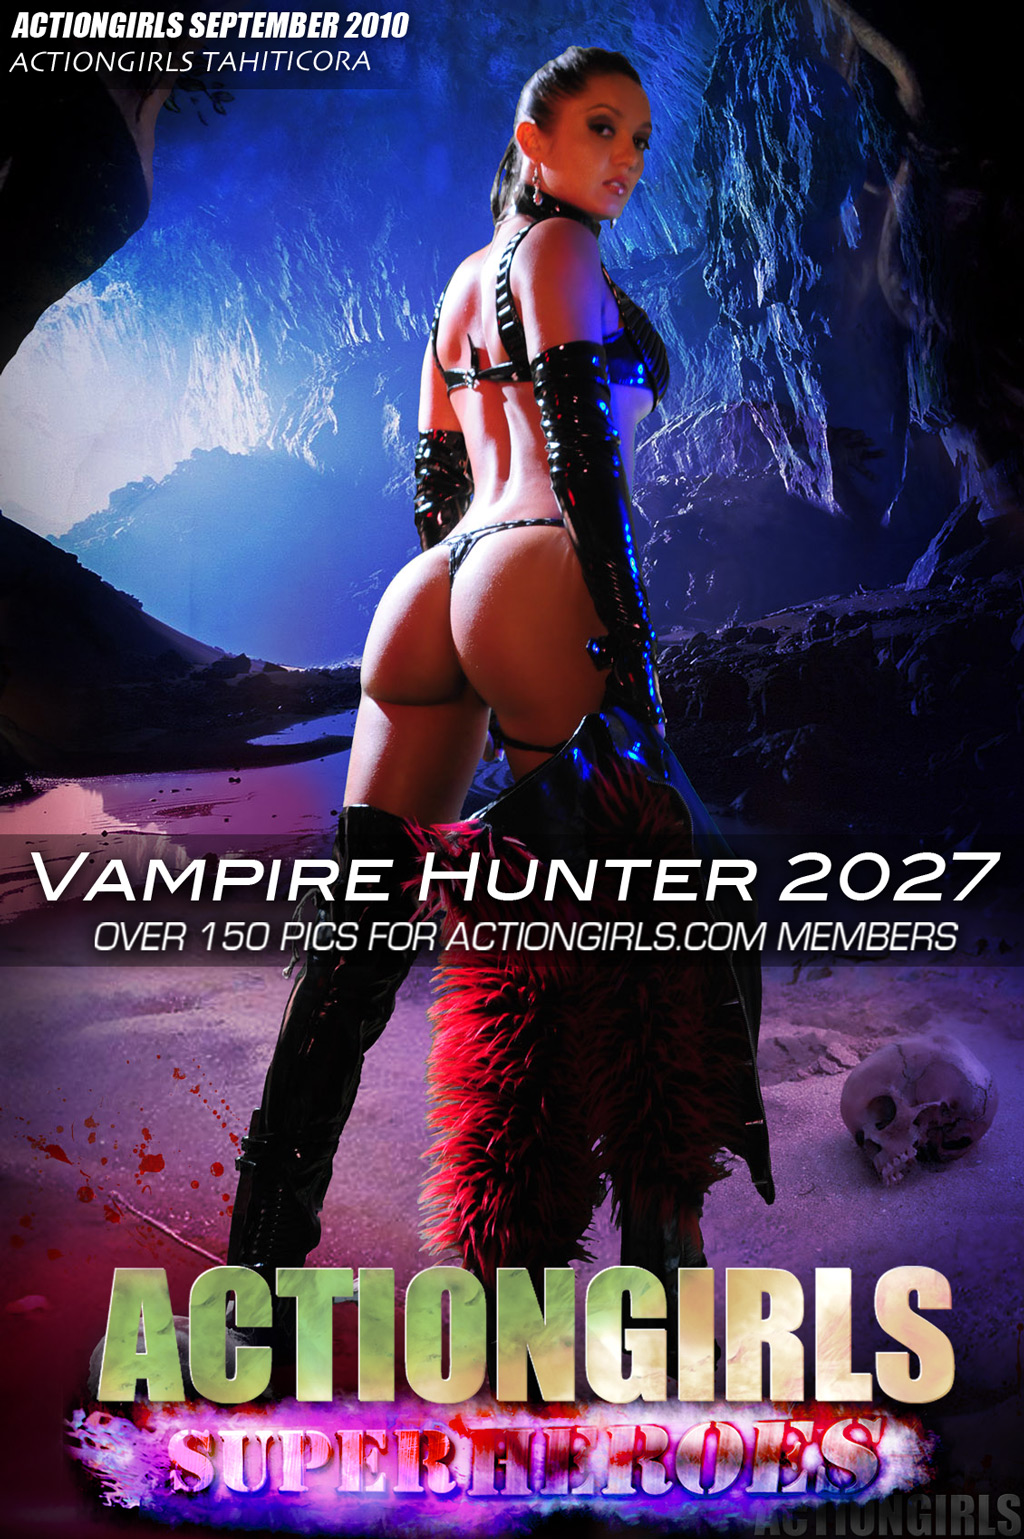 Sexy vampire hunter sexy download